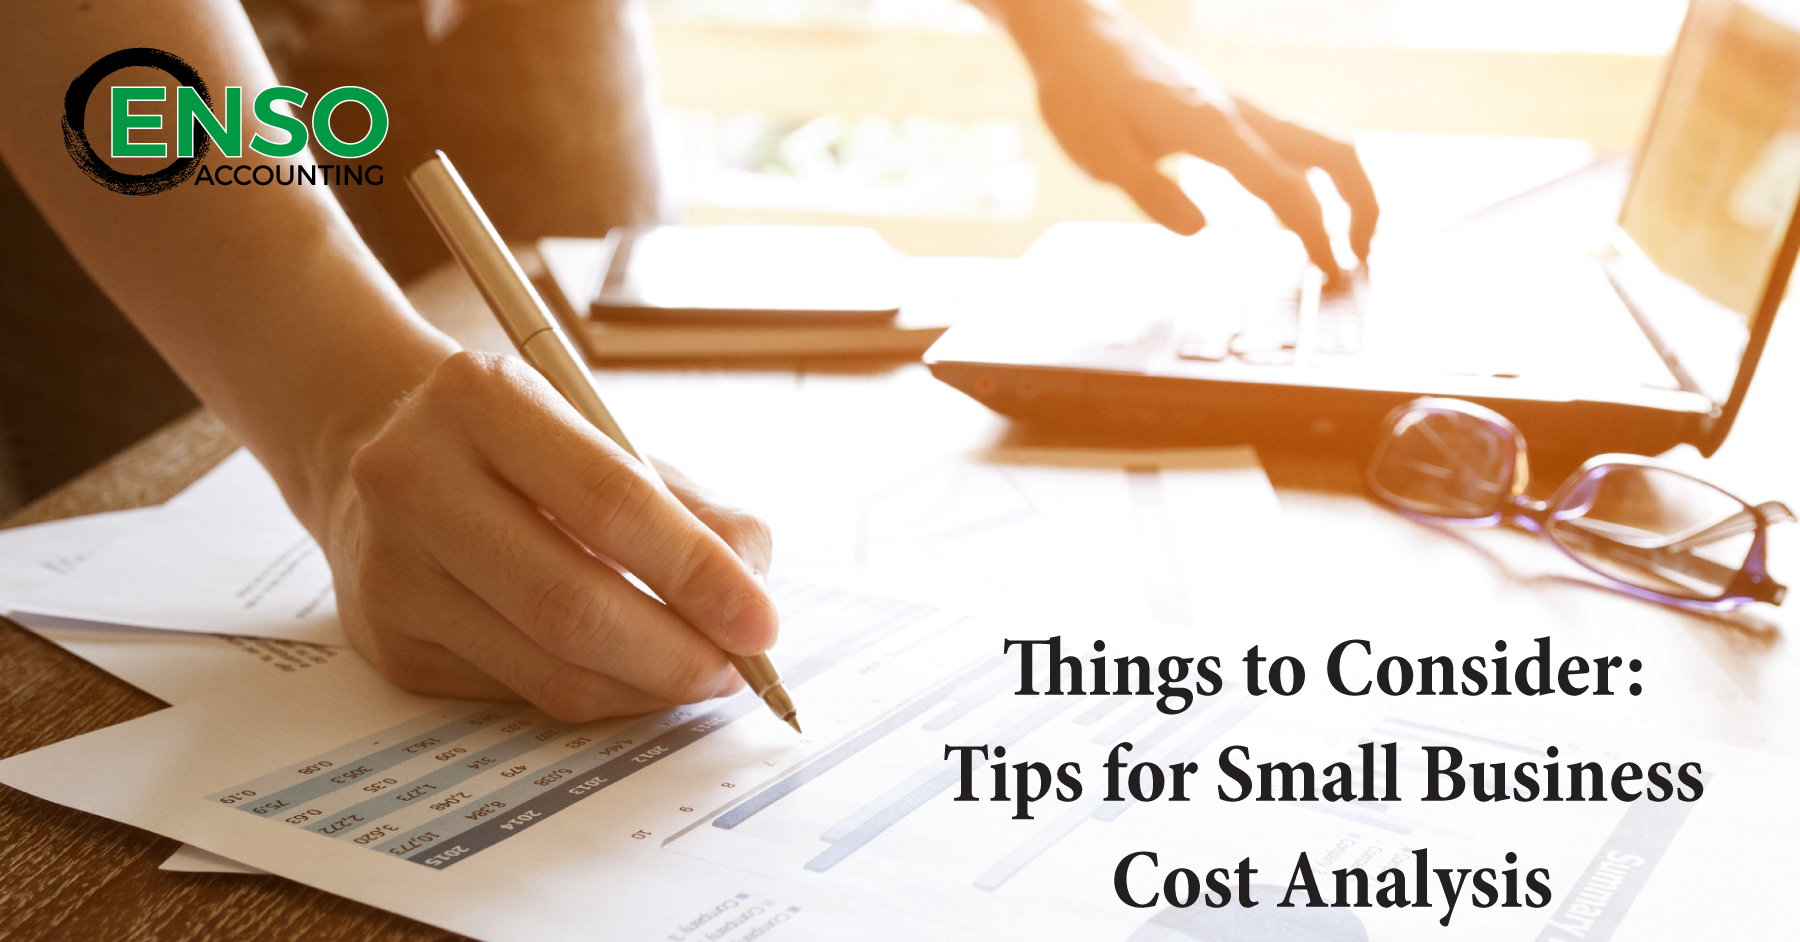 Things To Consider Tips For Small Business Cost Analysis Enso Accounting